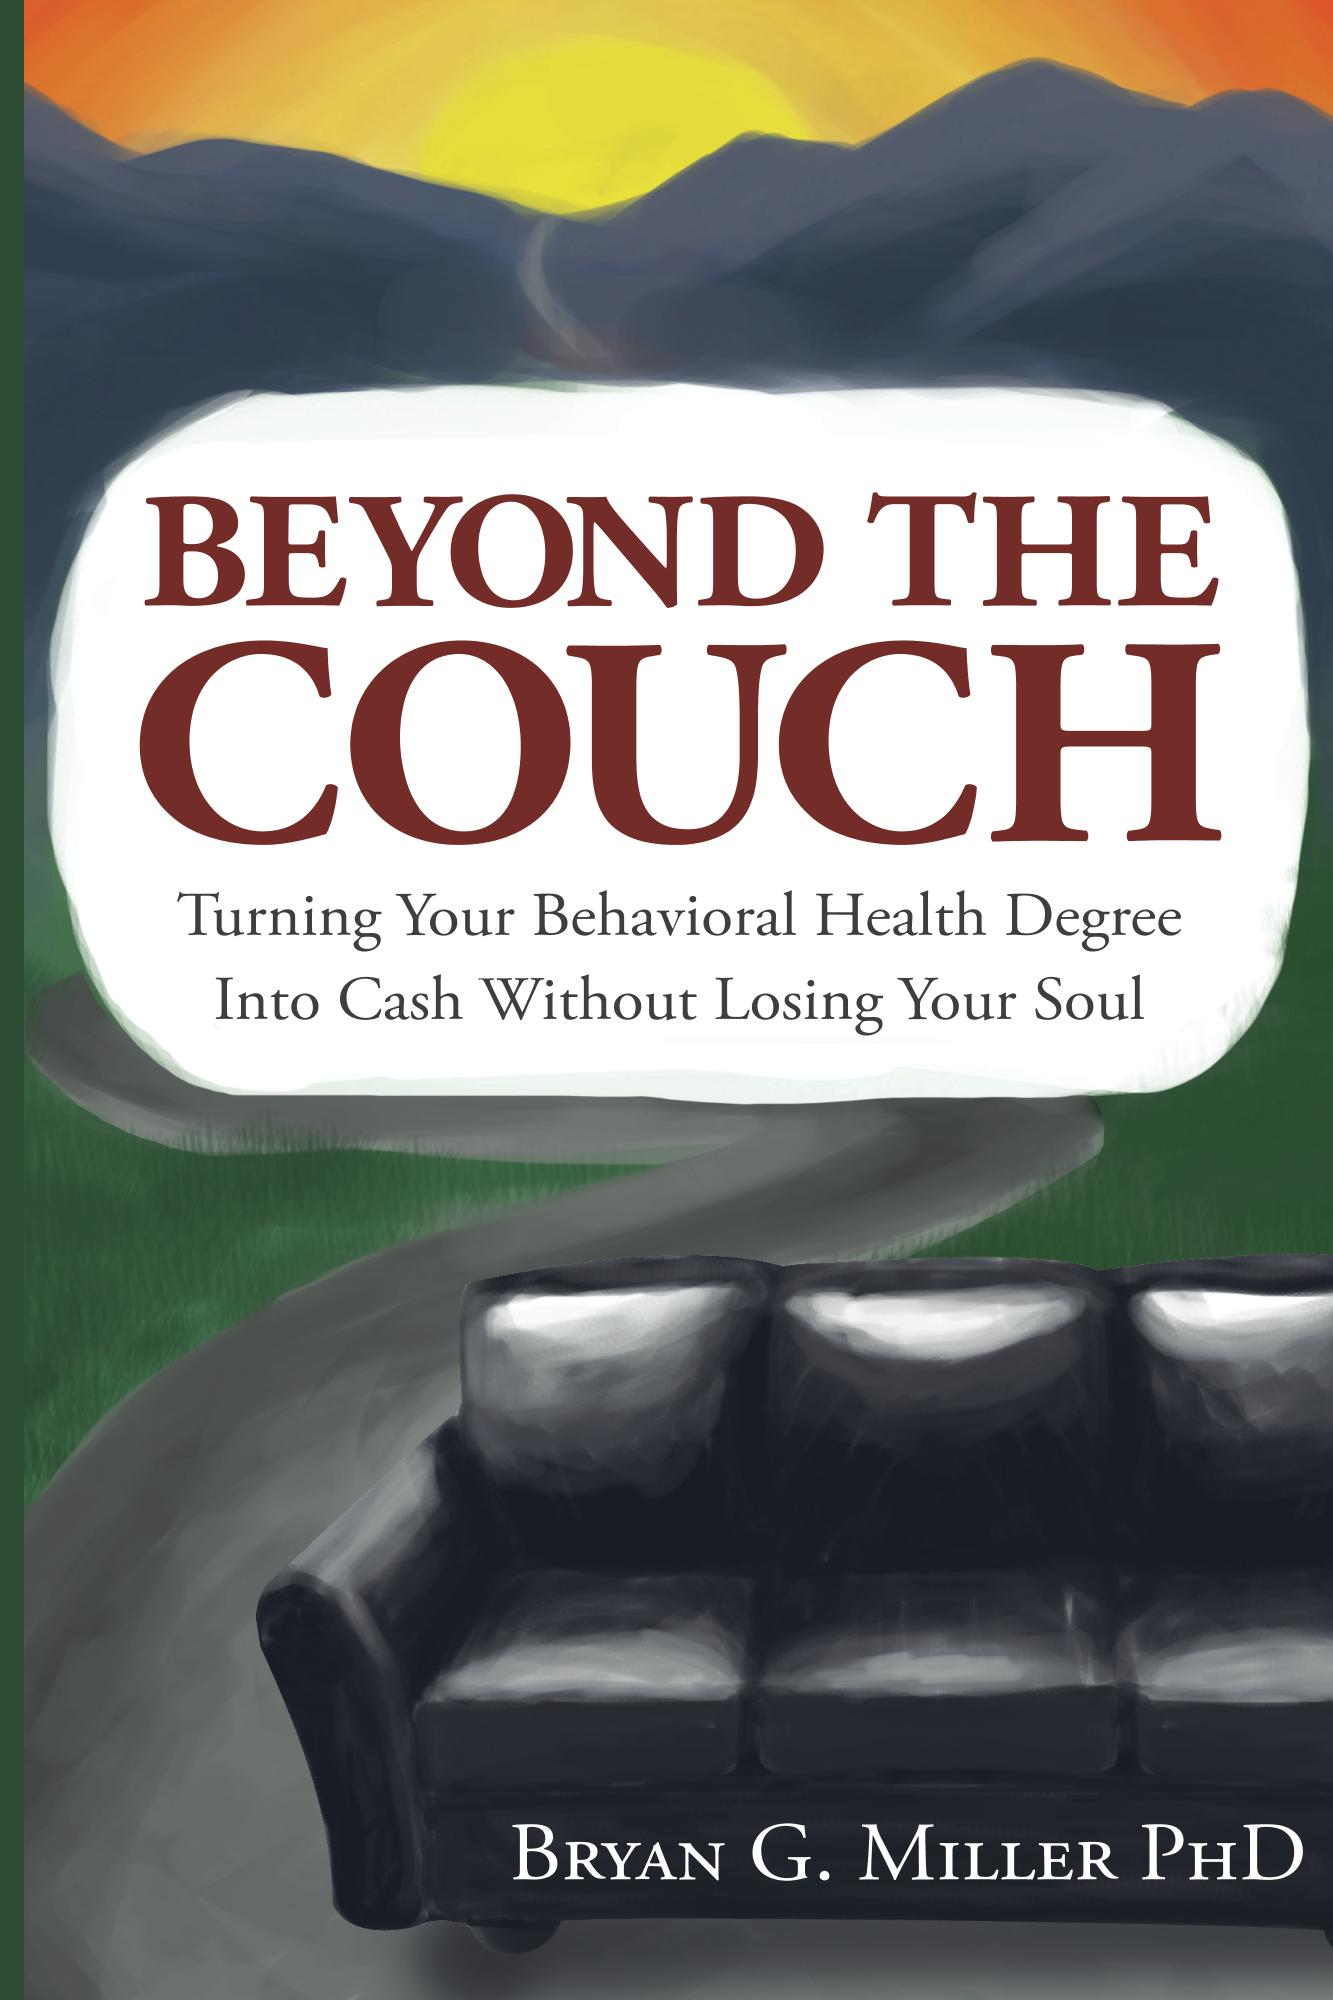 Dr. Miller is the author of Beyond the Couch.